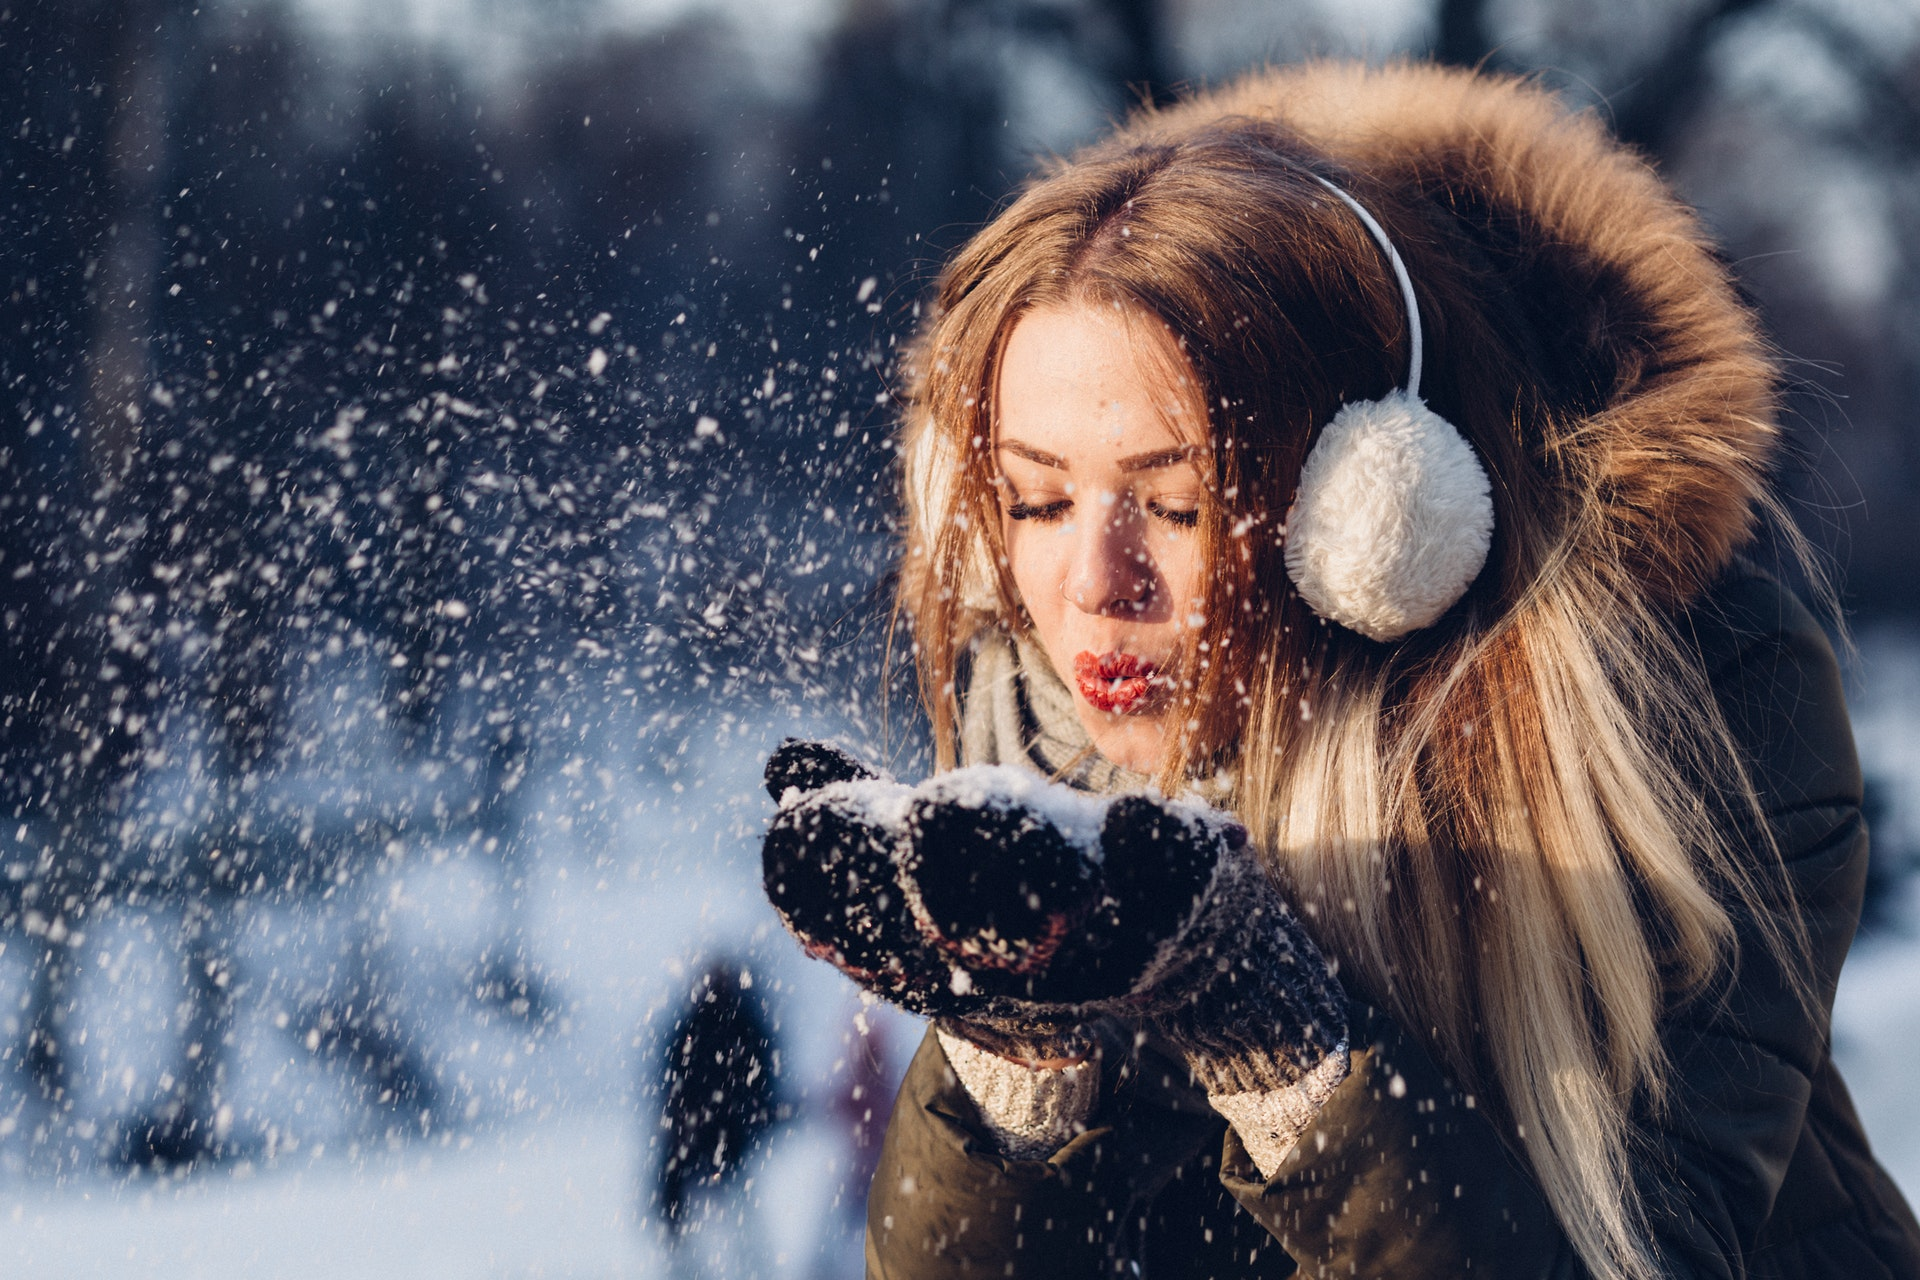 girl in winter photography portrait